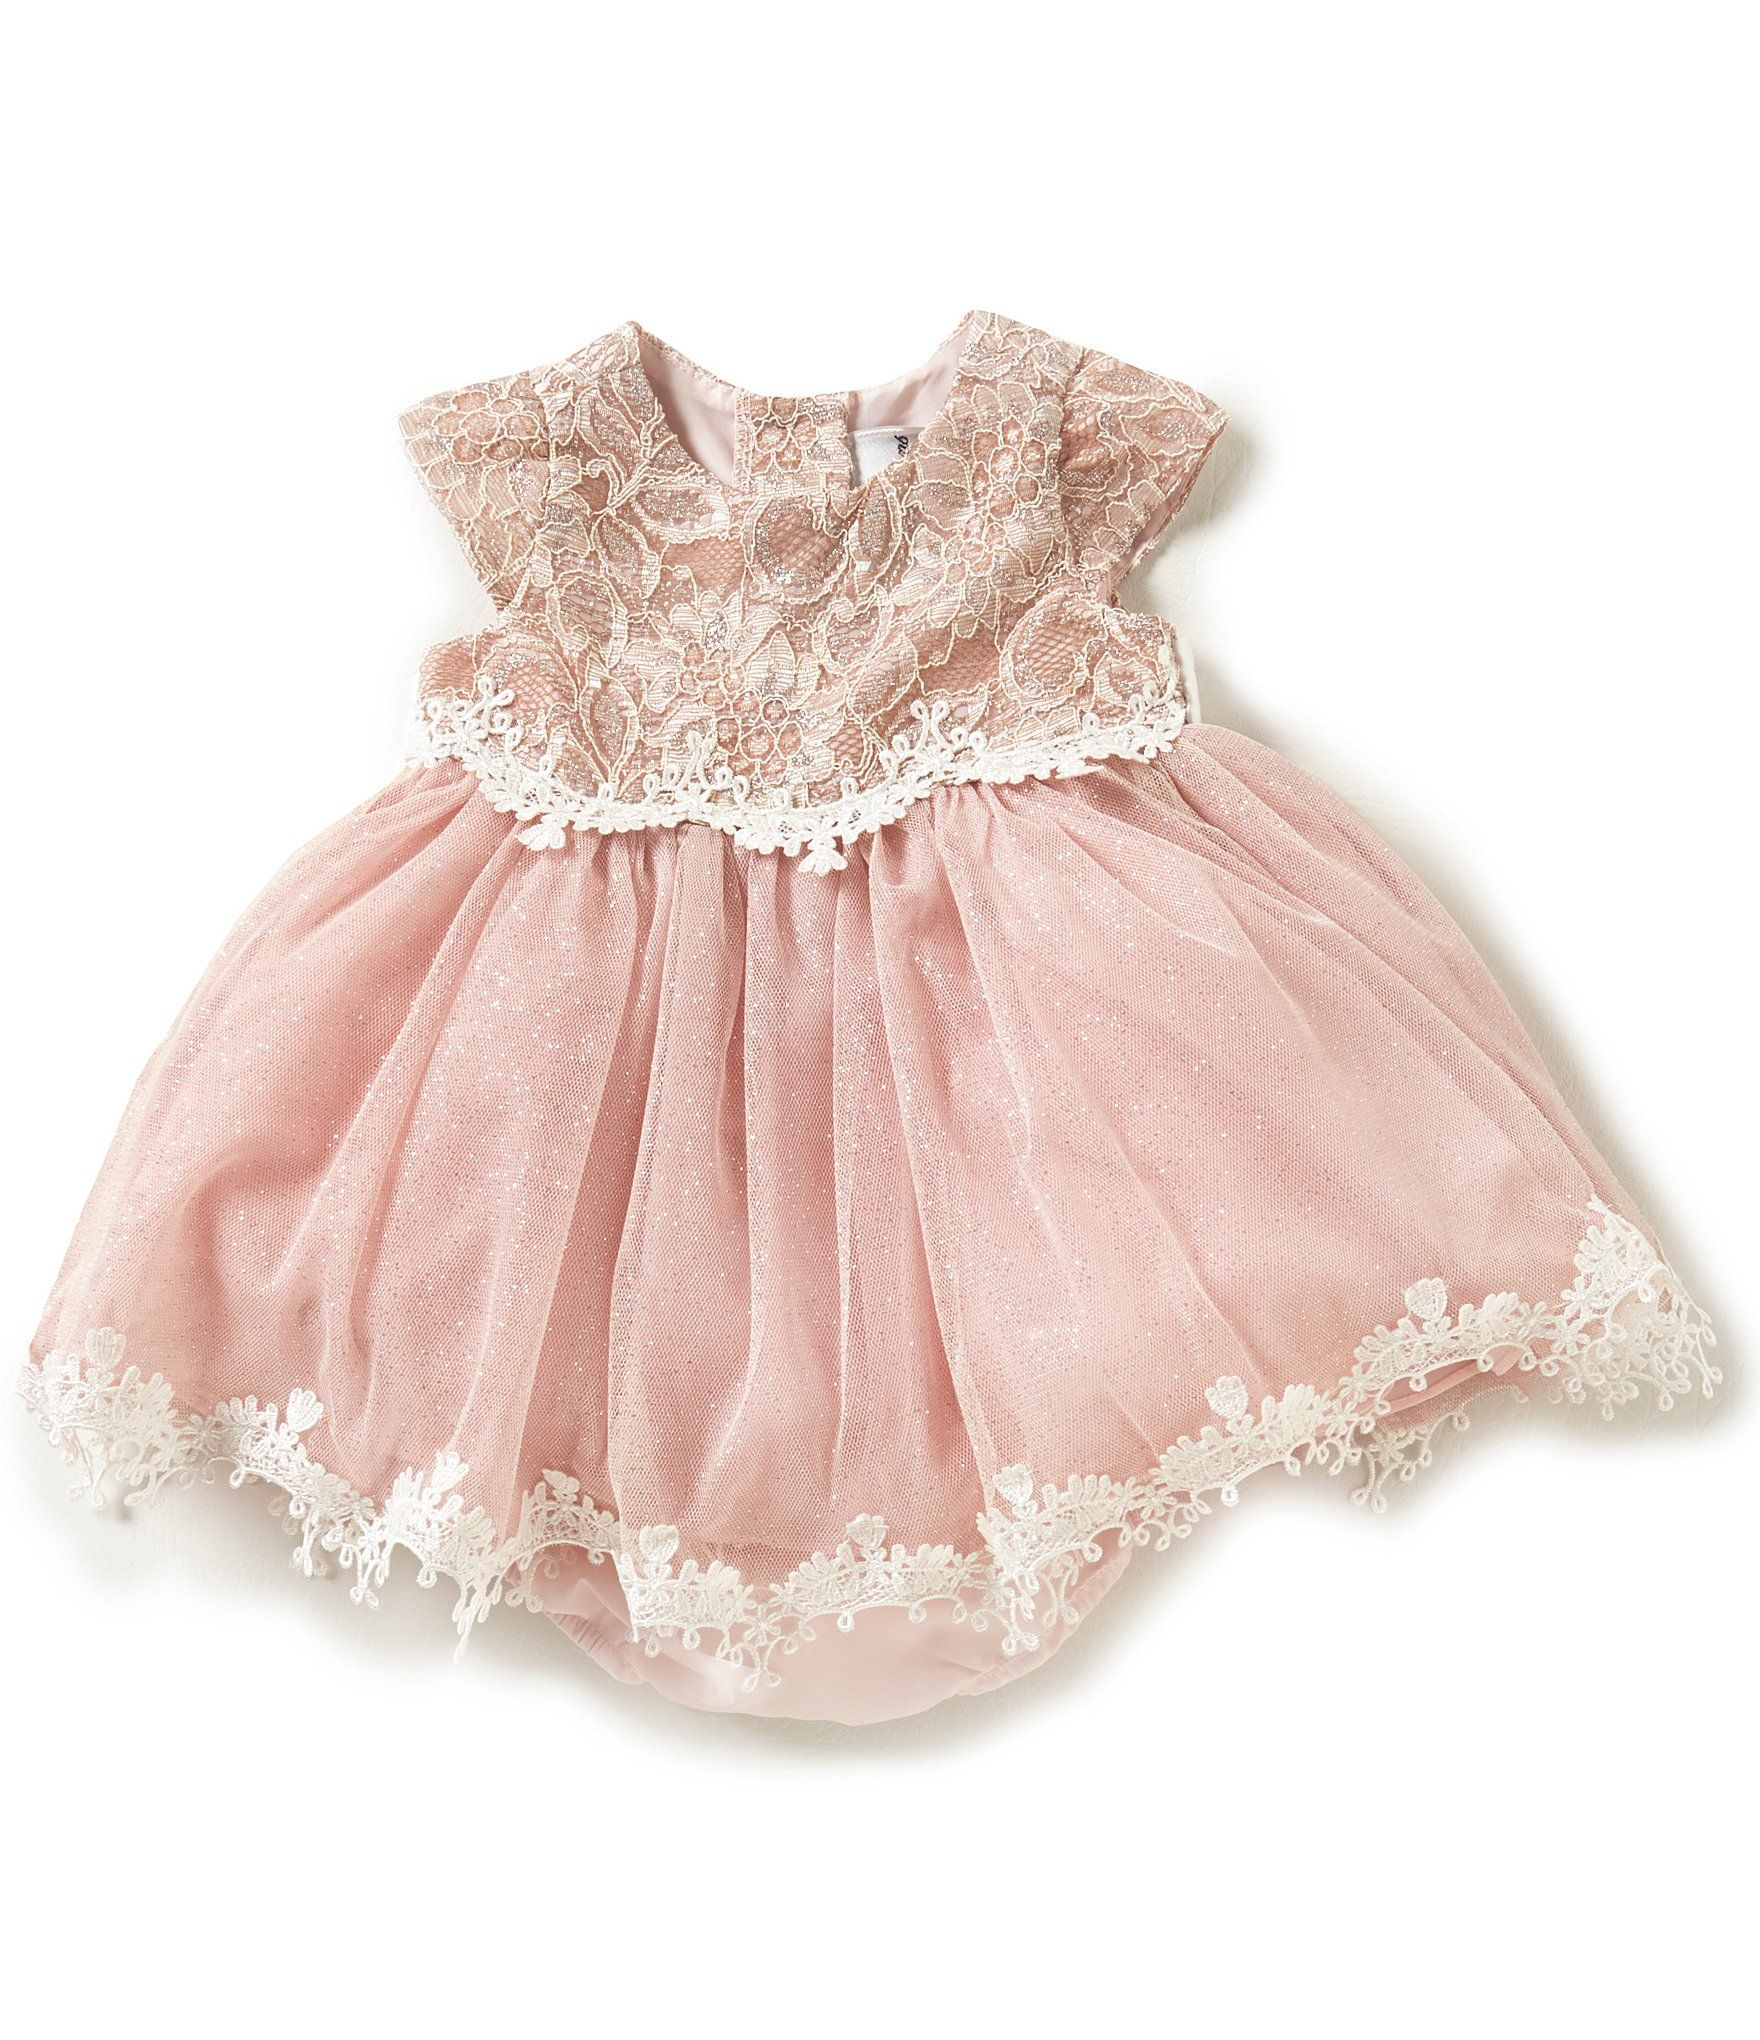 Rare Editions Baby Girls 3 24 Months Sparkle Lace to Mesh Dress